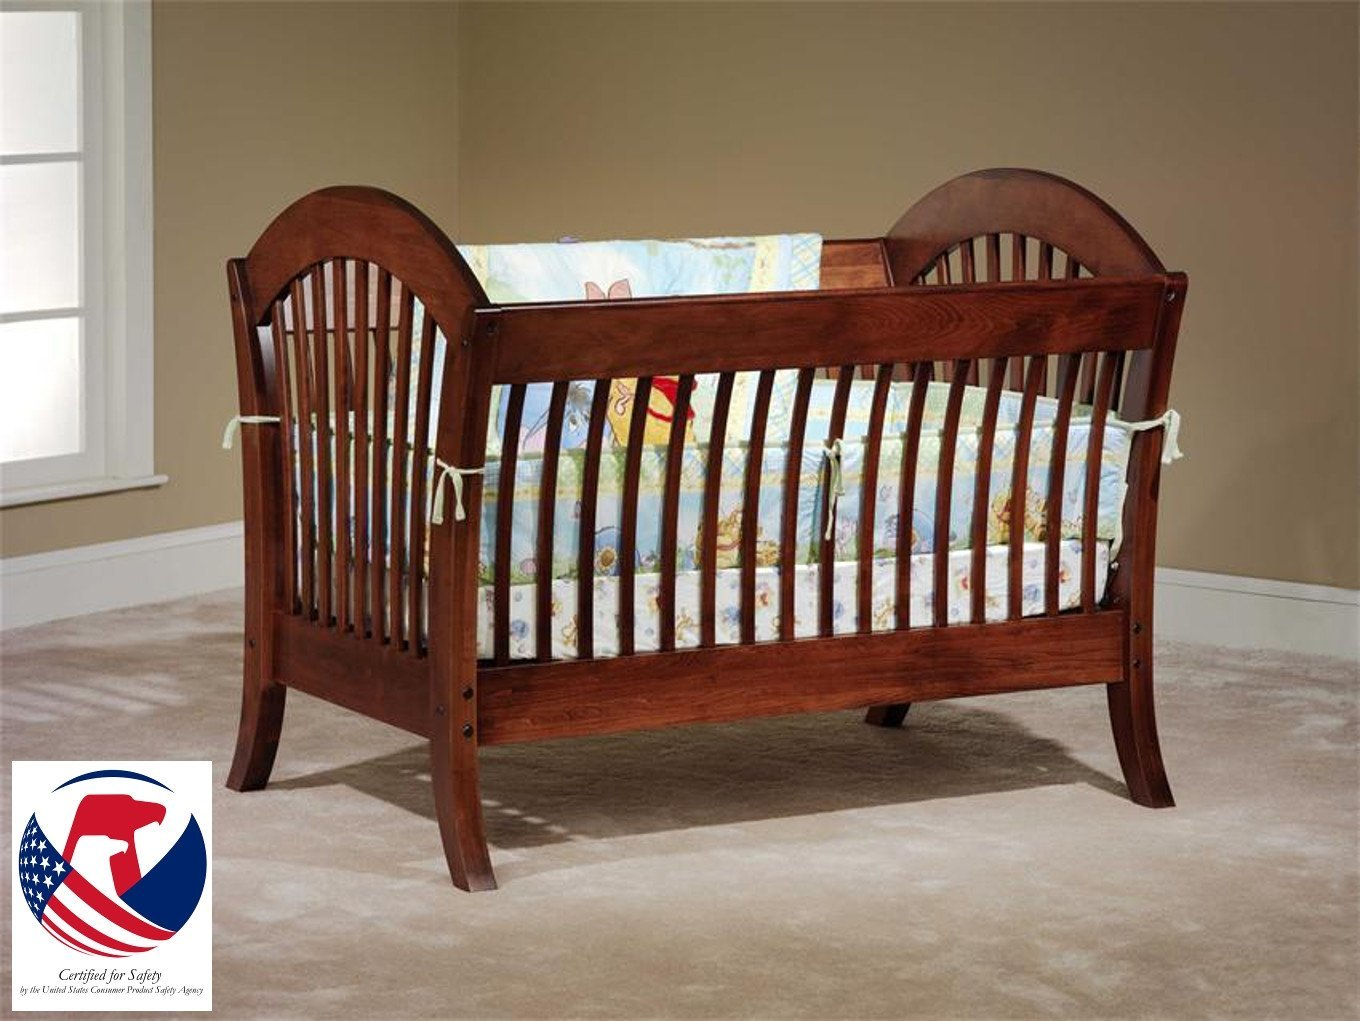 pine usa baby cradle furniture bassinets hand wood crib victorian spindle doll cradles made c wooden unfinished cribs nursery